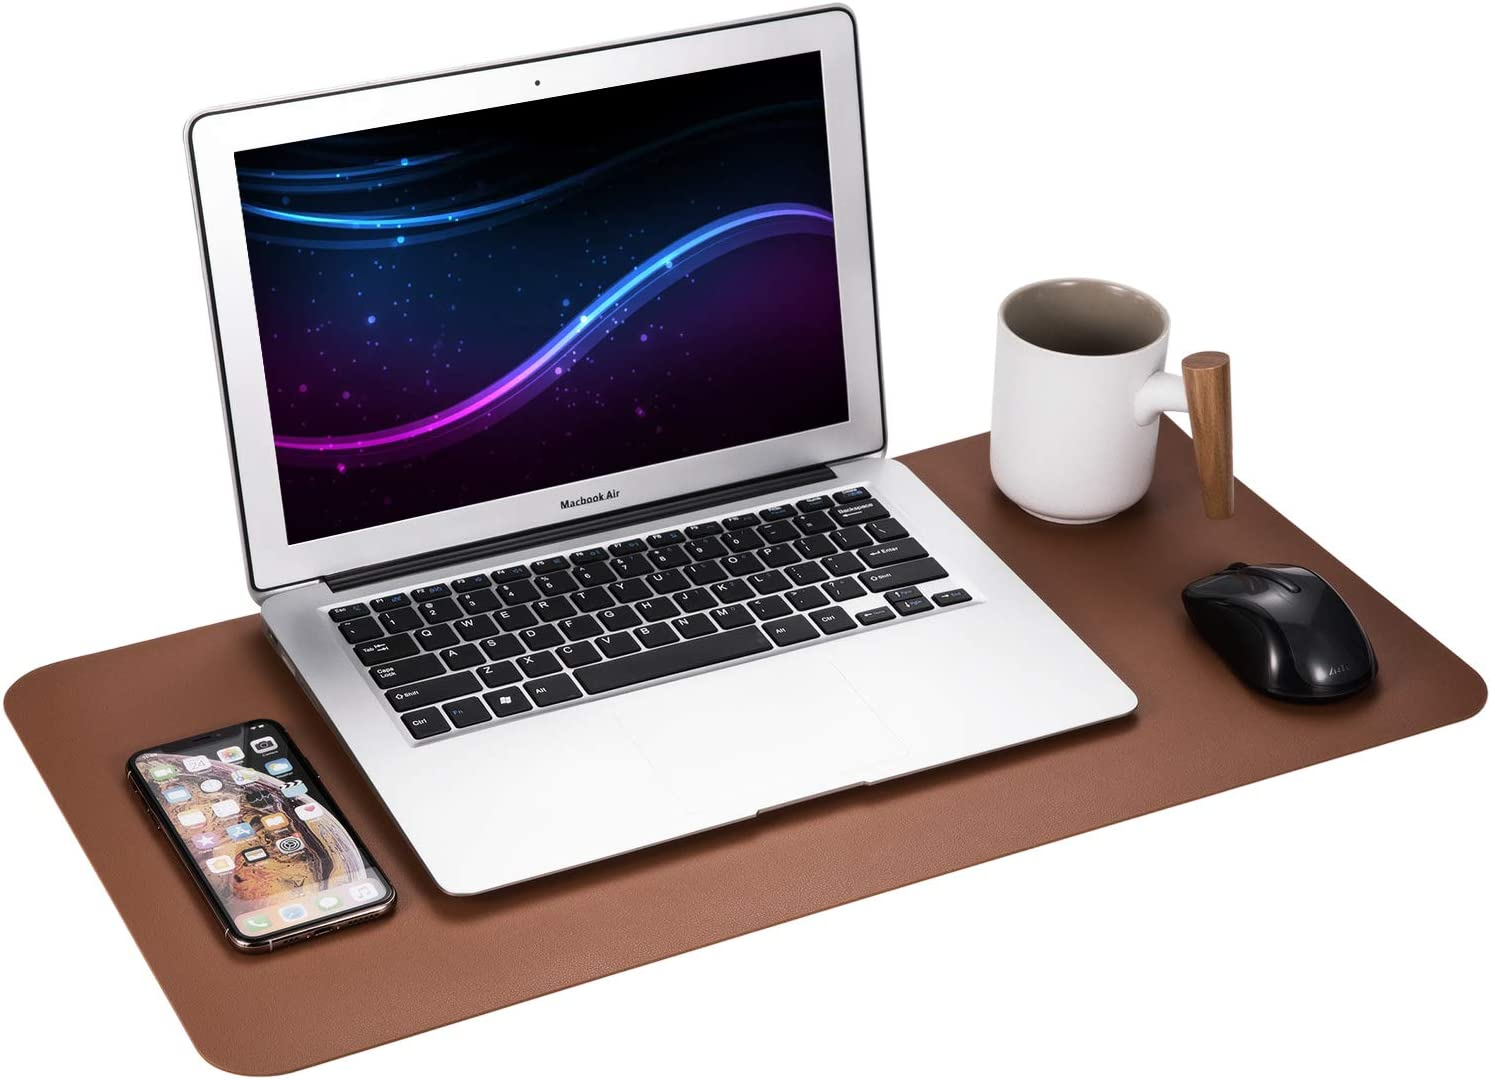 "Gogloo Multifunctional Office Desk Pad, Dual Sided PU Leather Mouse Pad, Thin and Waterproof Desk Blotter Protector, Desk Writing Mat for Office/Home (Brown, 23.6"" x 12"")"